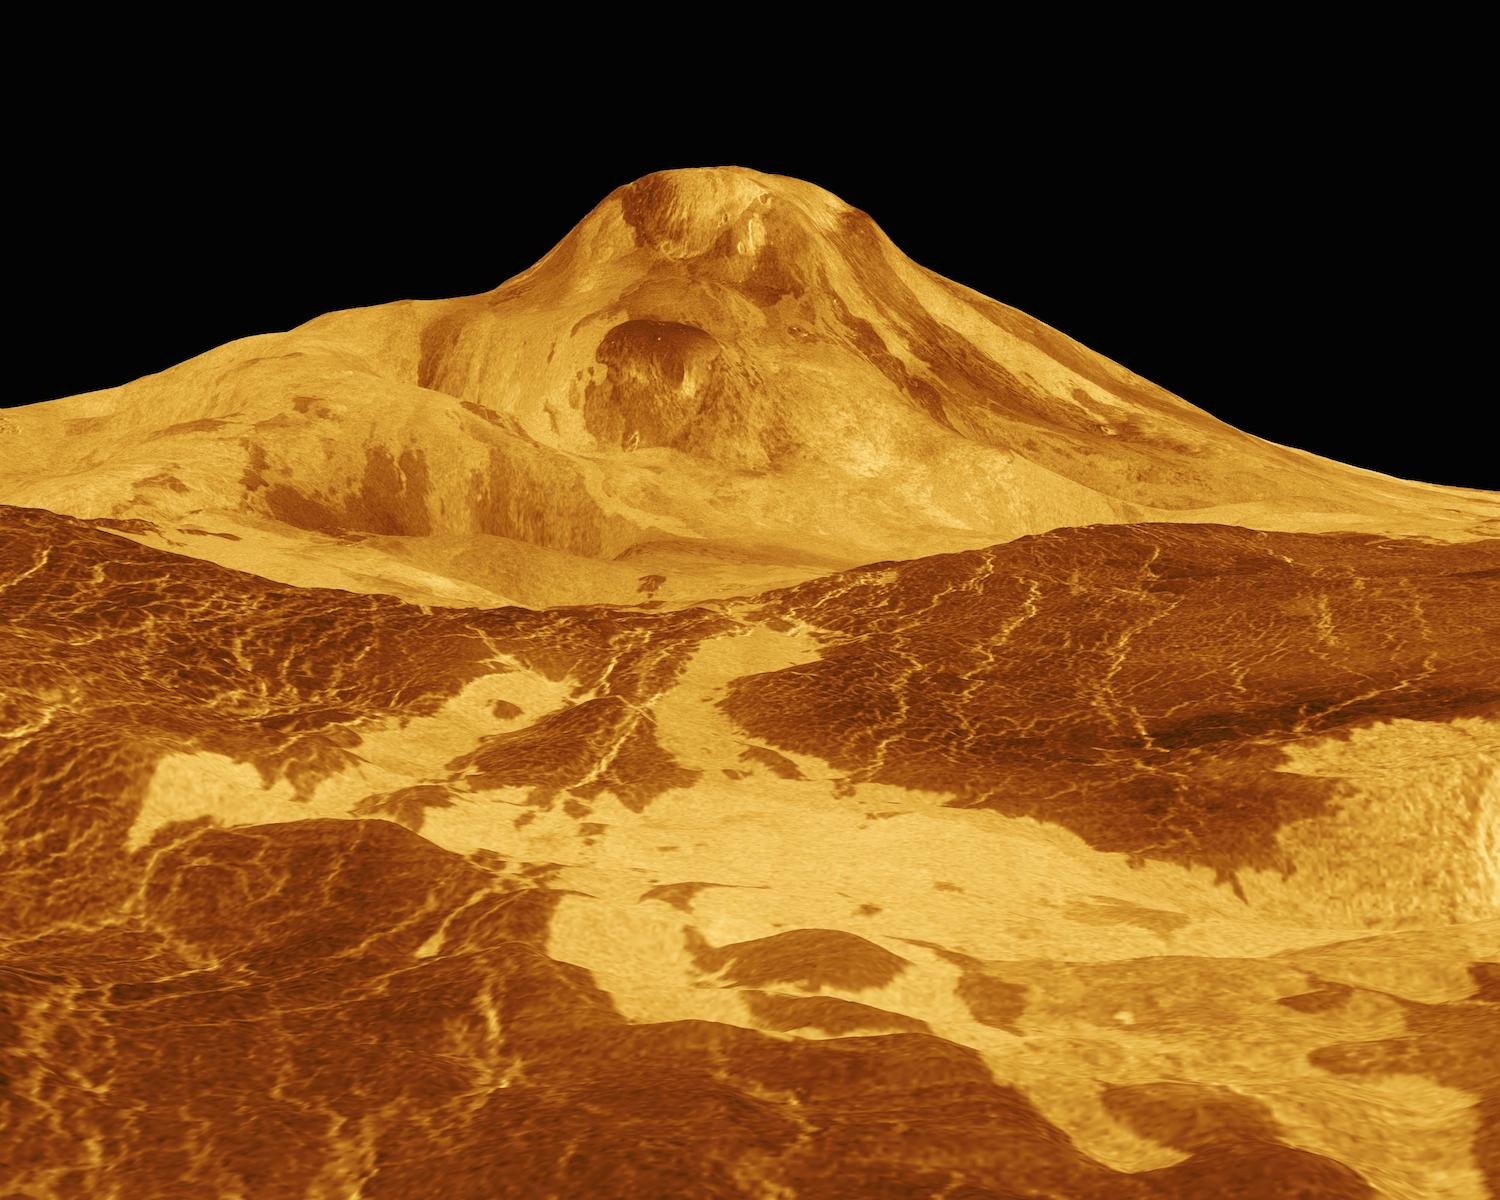 The Jet Propulsion Laboratory used radar data from the Magellan spacecraft to create this perspective view of 8-kilometer high Maat Mons, the largest volcano on Venus. The vertical scale has been exaggerated to detailseasier to see. The original monochrome data was colorizedyellowto match images from the Venera missions. Credit:  Nasa/JPL-Caltech